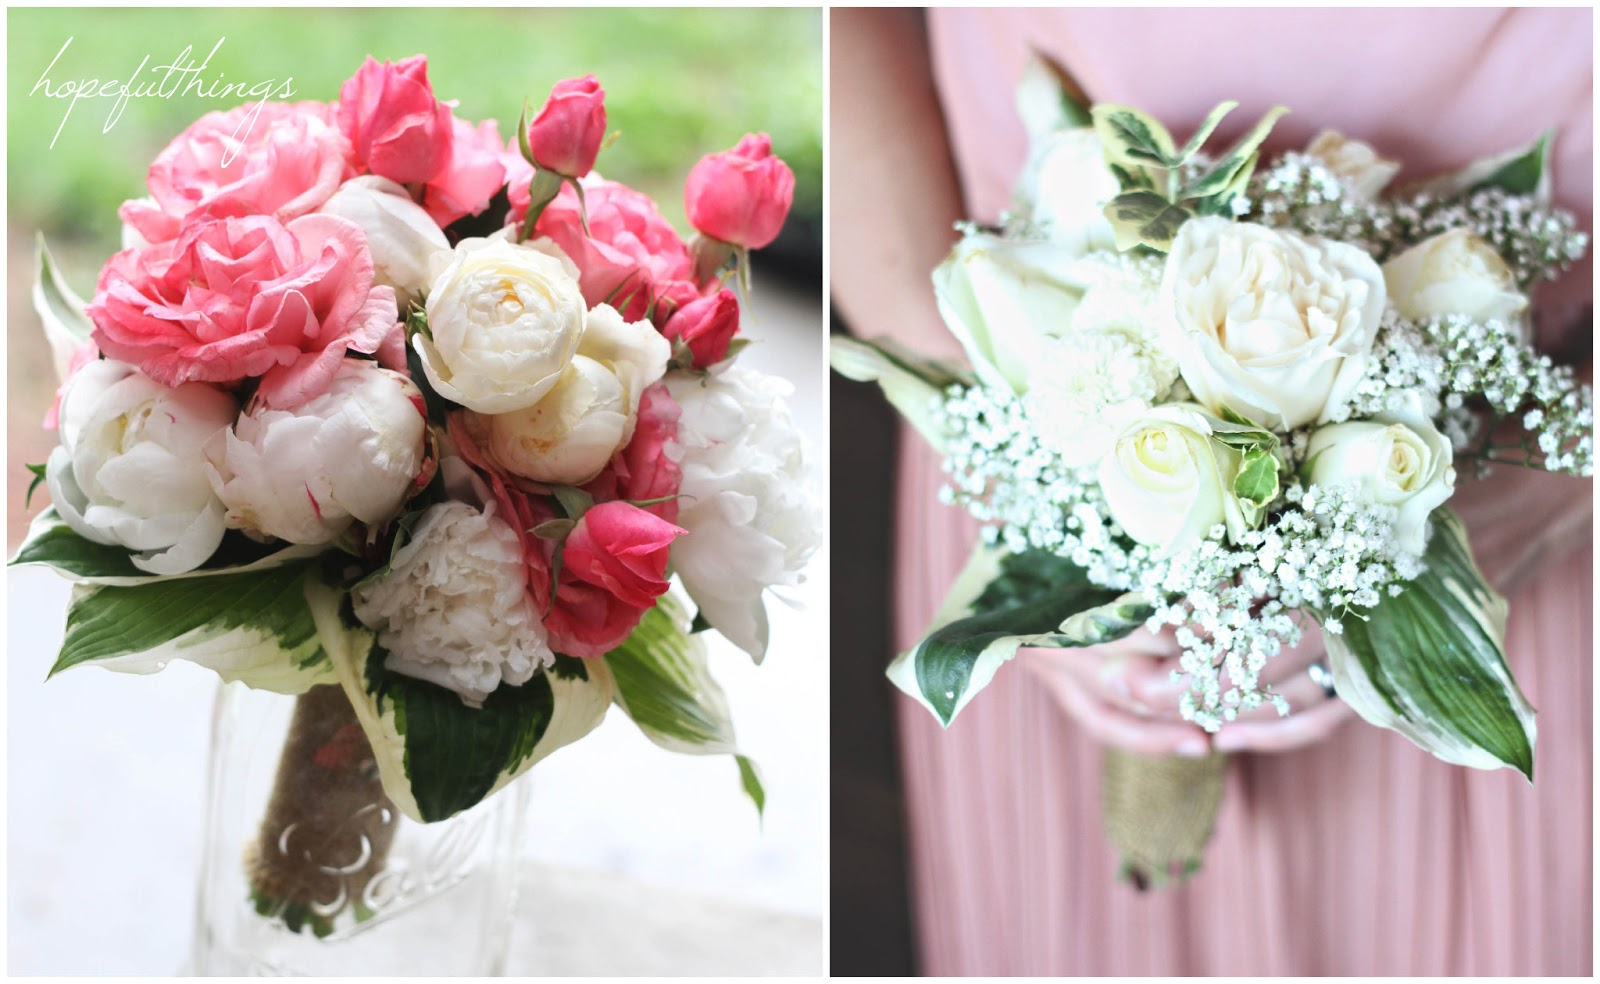 Hopeful: Floral Design Ideas